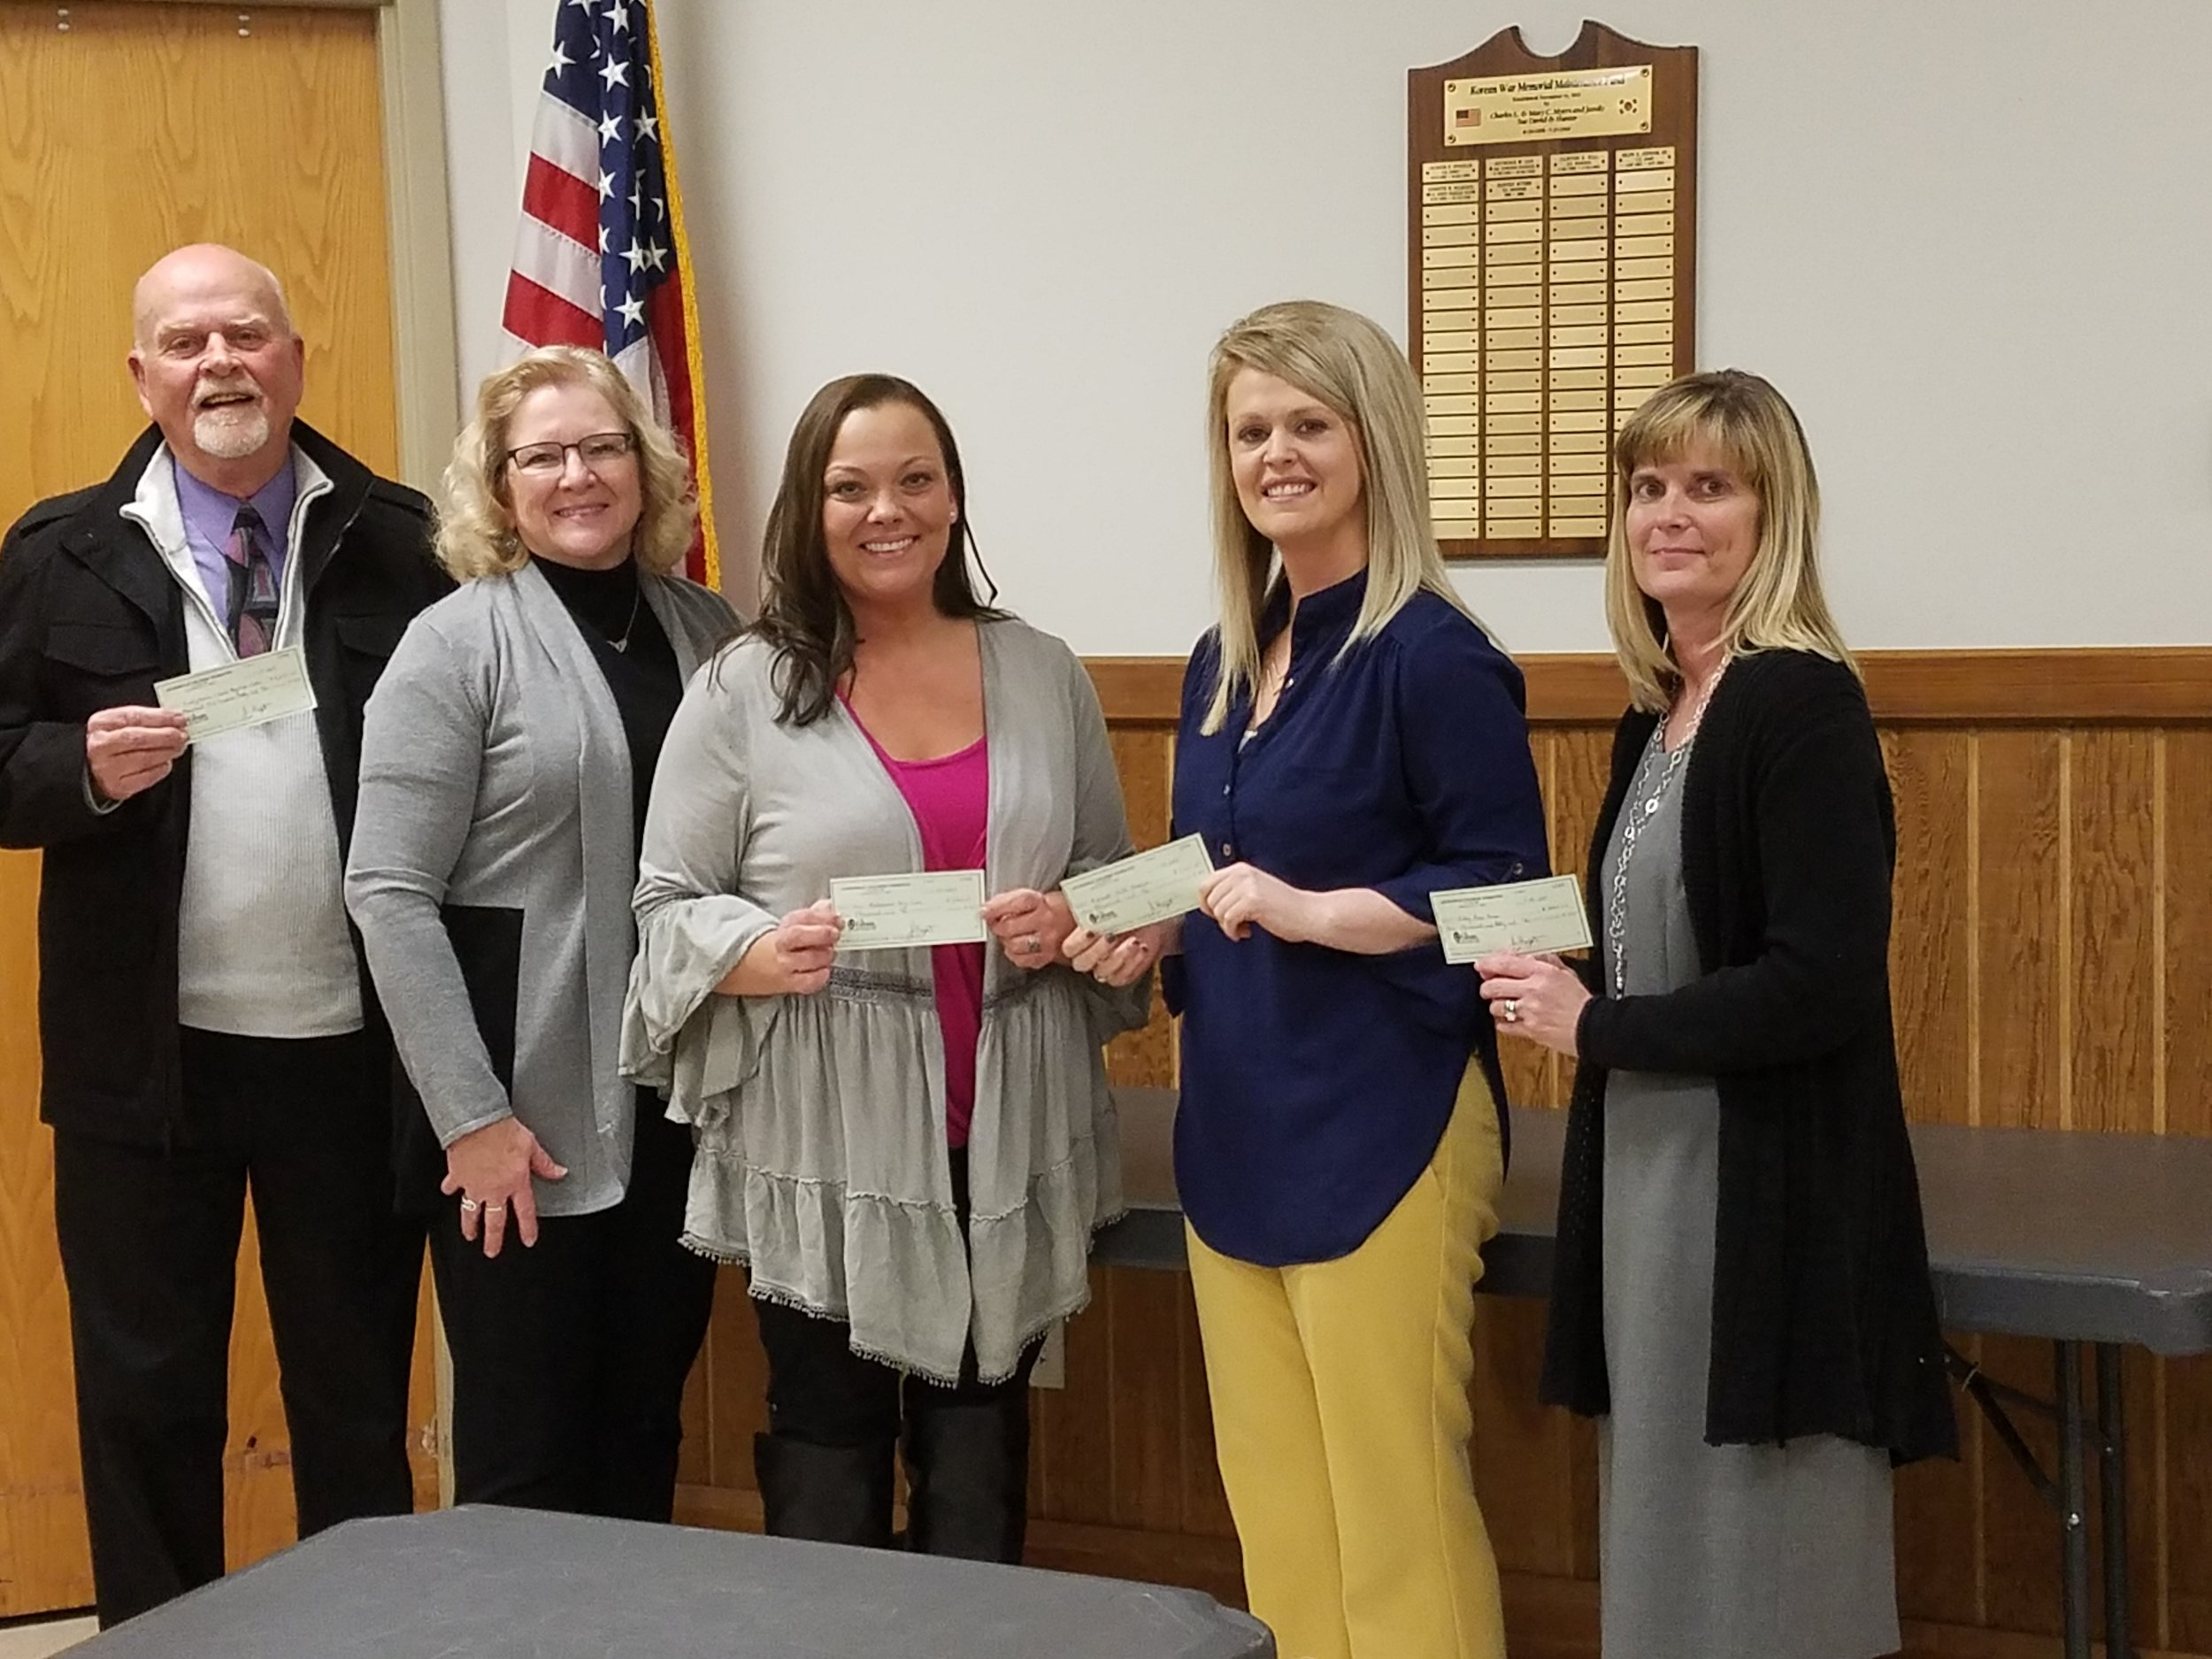 left to right: Odell Fellhauer - Presbyterian Church Day Care, Carolyn Bonjean - Board Member Jacksonville Children's Foundation, Ashley Lipscomb, Our Redeemer Day Care, Ann Hungerford, Midwest Youth Services, and Annette Huddleston, Hobby Horse House.